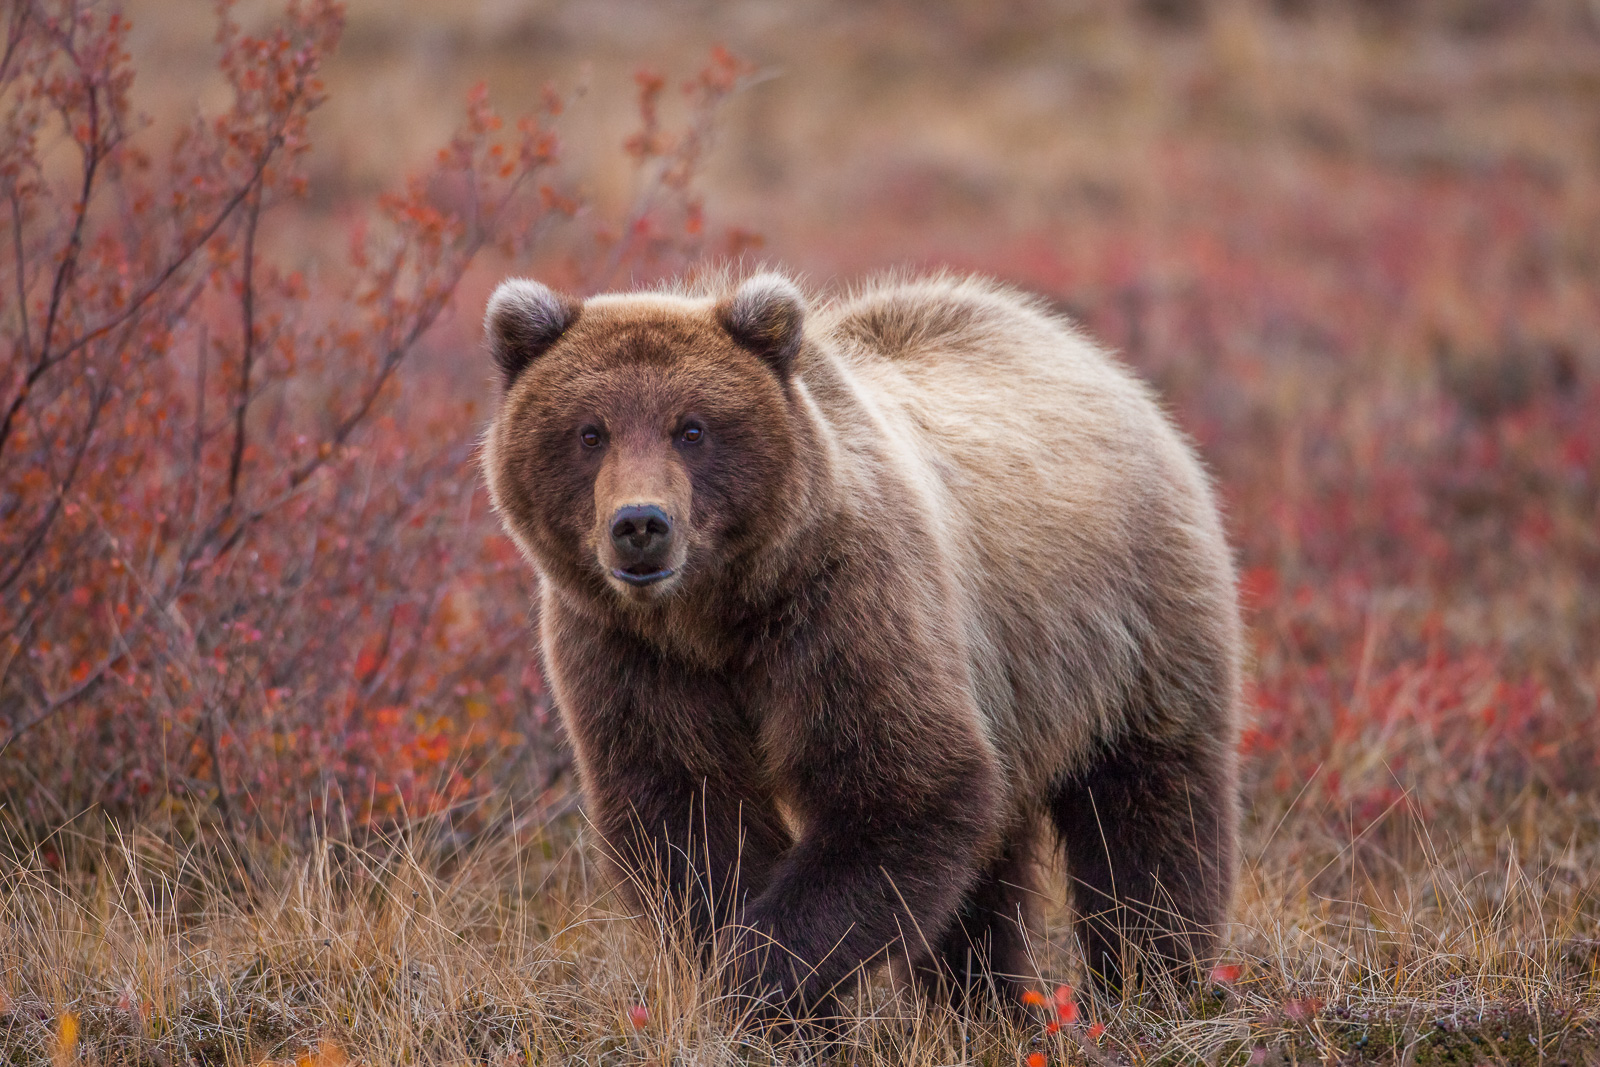 Caught Me,Fall,Grizzly,Wildlife,Denali national Park,Tundra,Autumn,Foliage,hunter,horizontal,bear, grizzly, photo